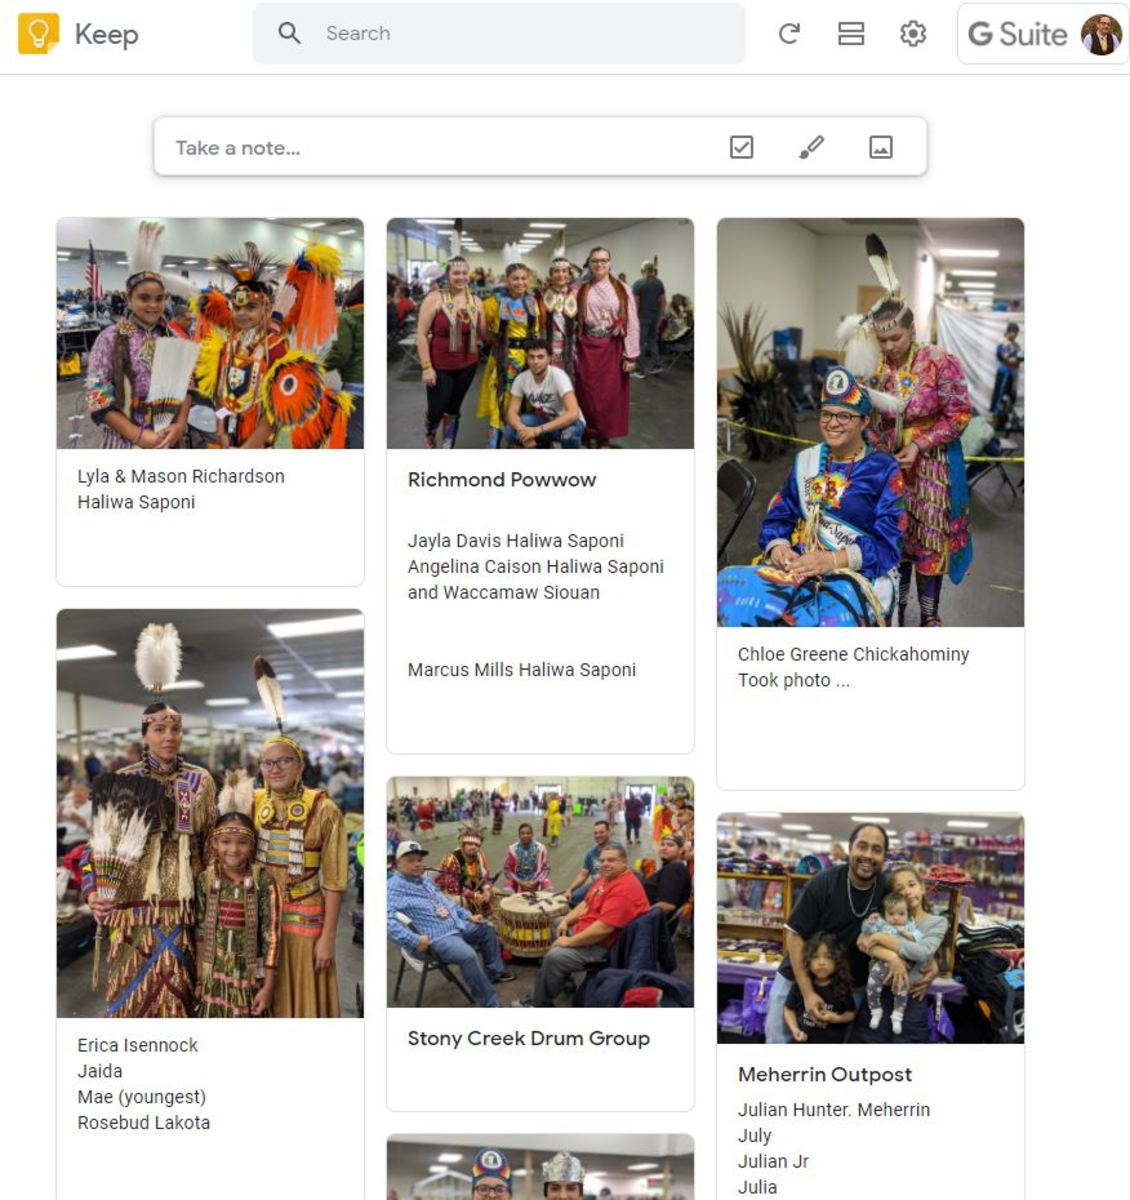 I used Google Keep on my phone and here's how it looks when it uploads to my computer.